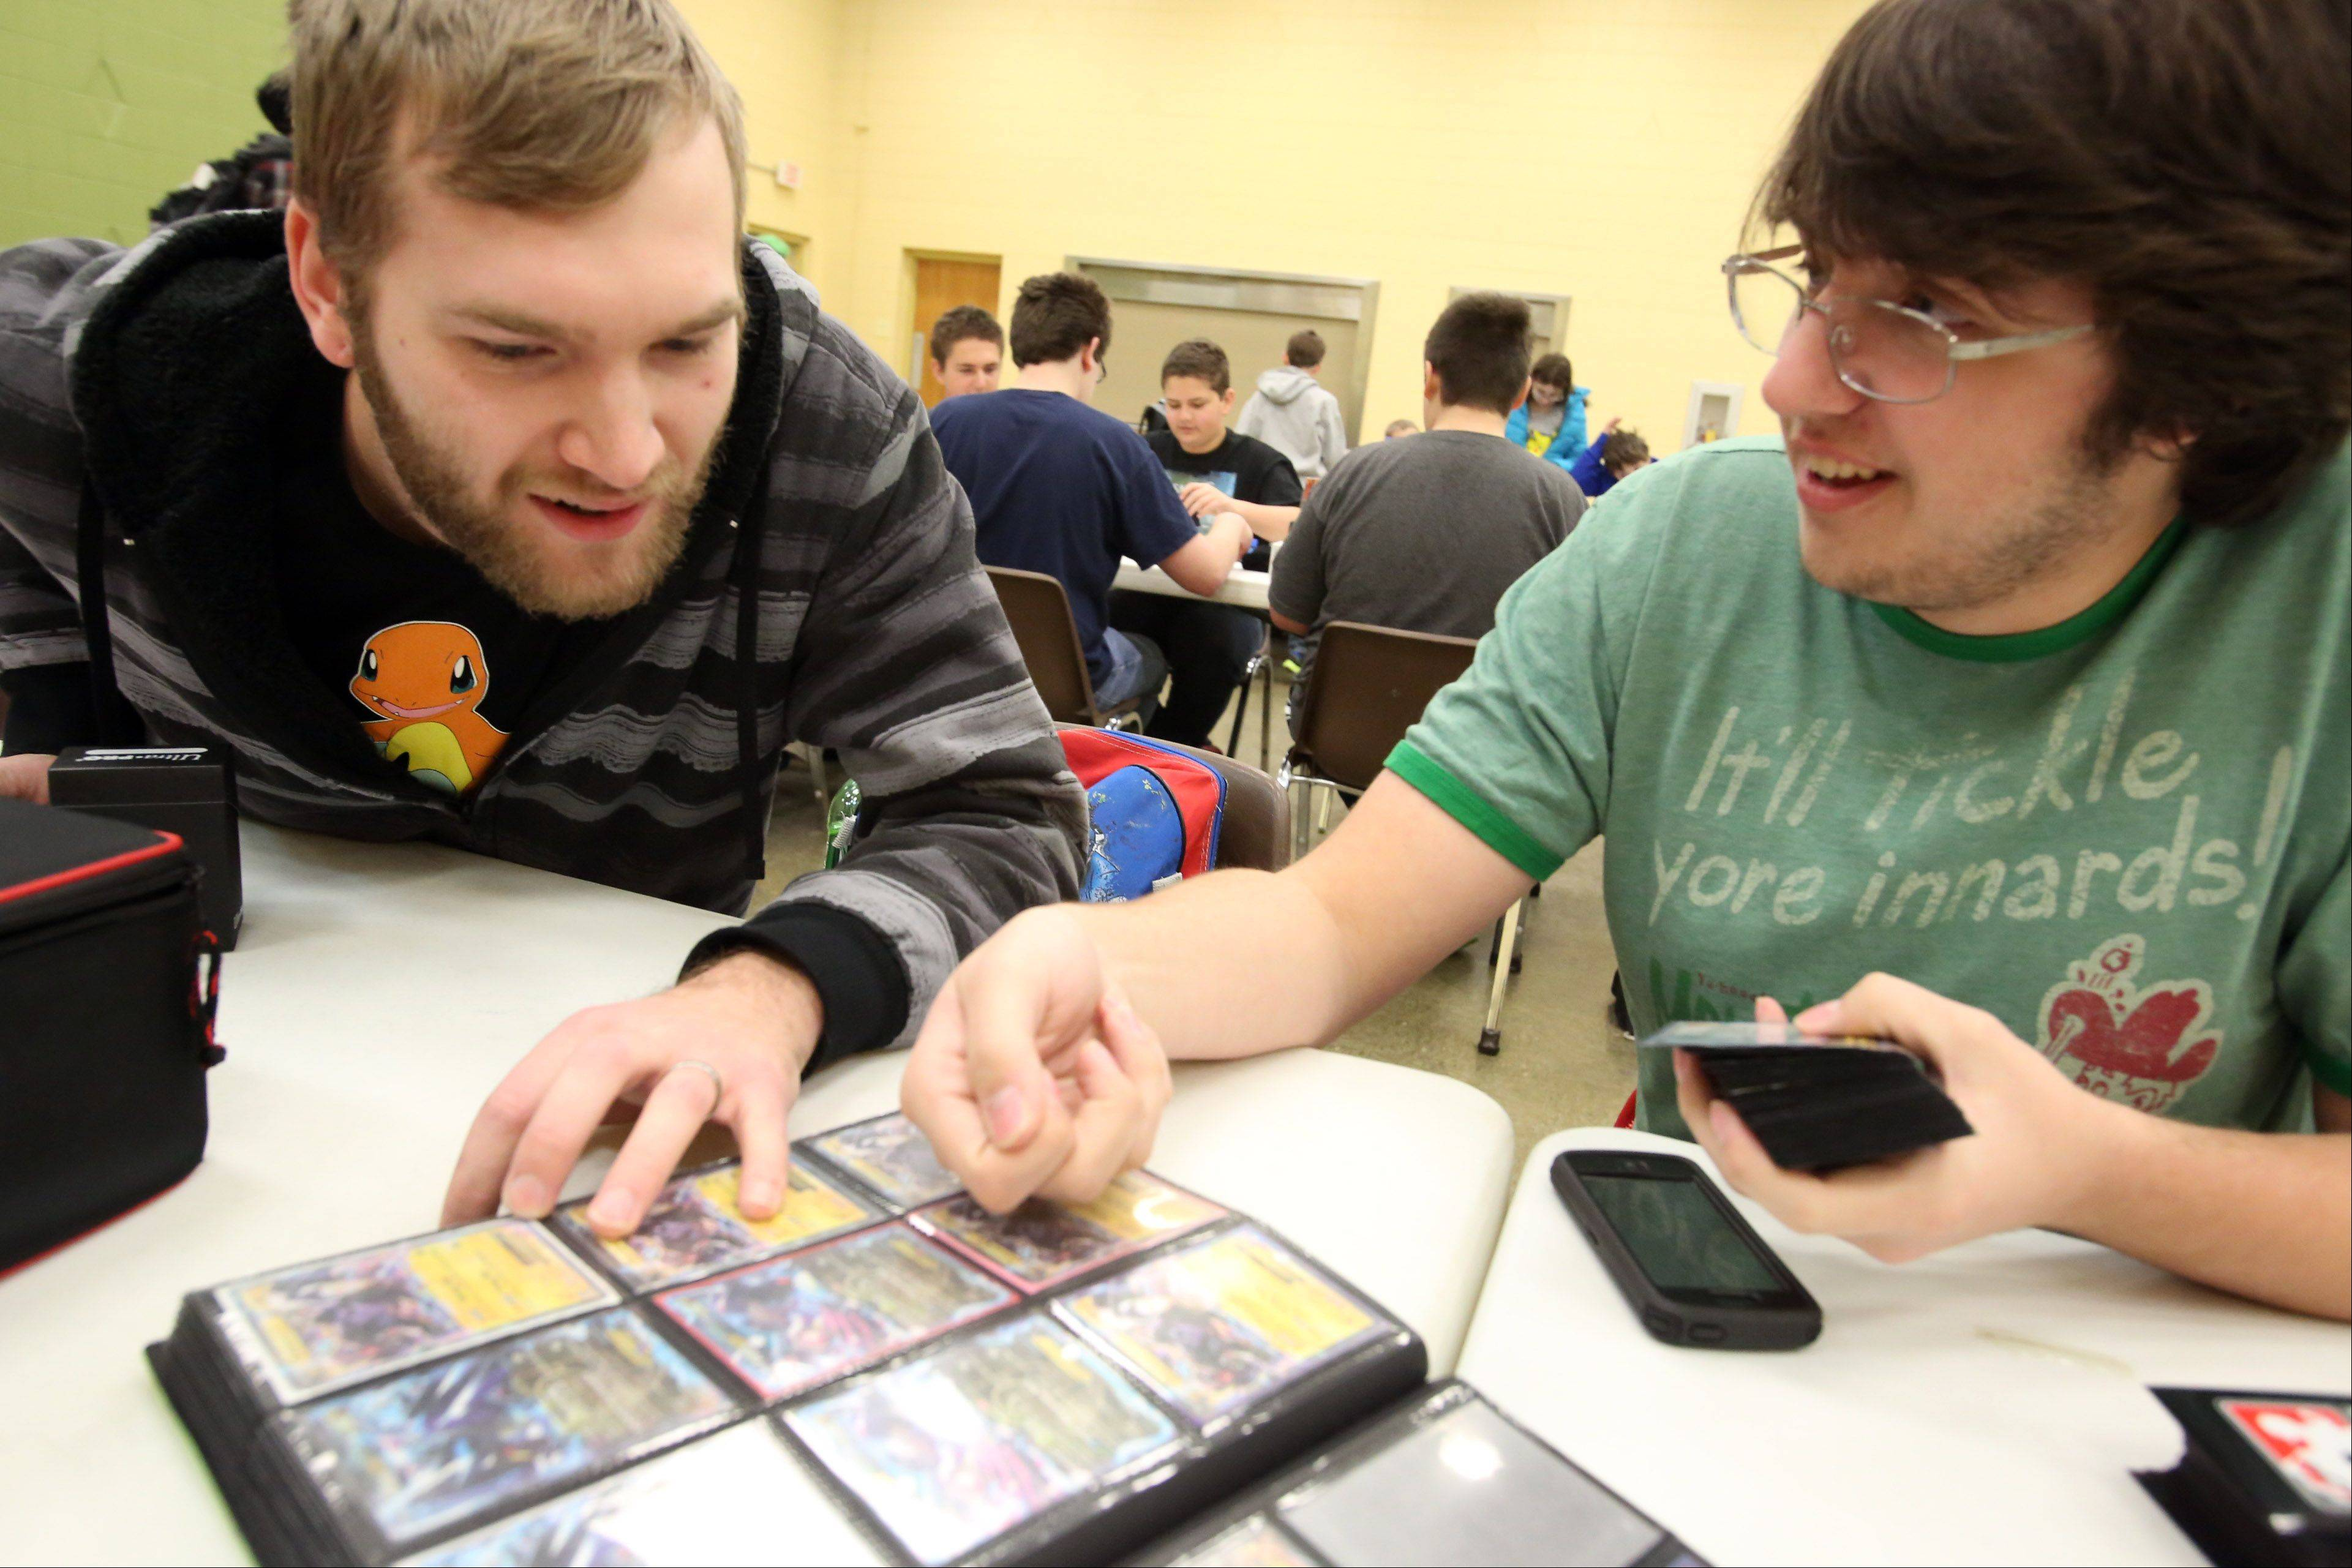 Tyler Lamb of Montgomery, left, trades cards with Steven Vlosak of Downers Grove at the Pokémon City Championships at the Huntley Park District on Saturday in Huntley.